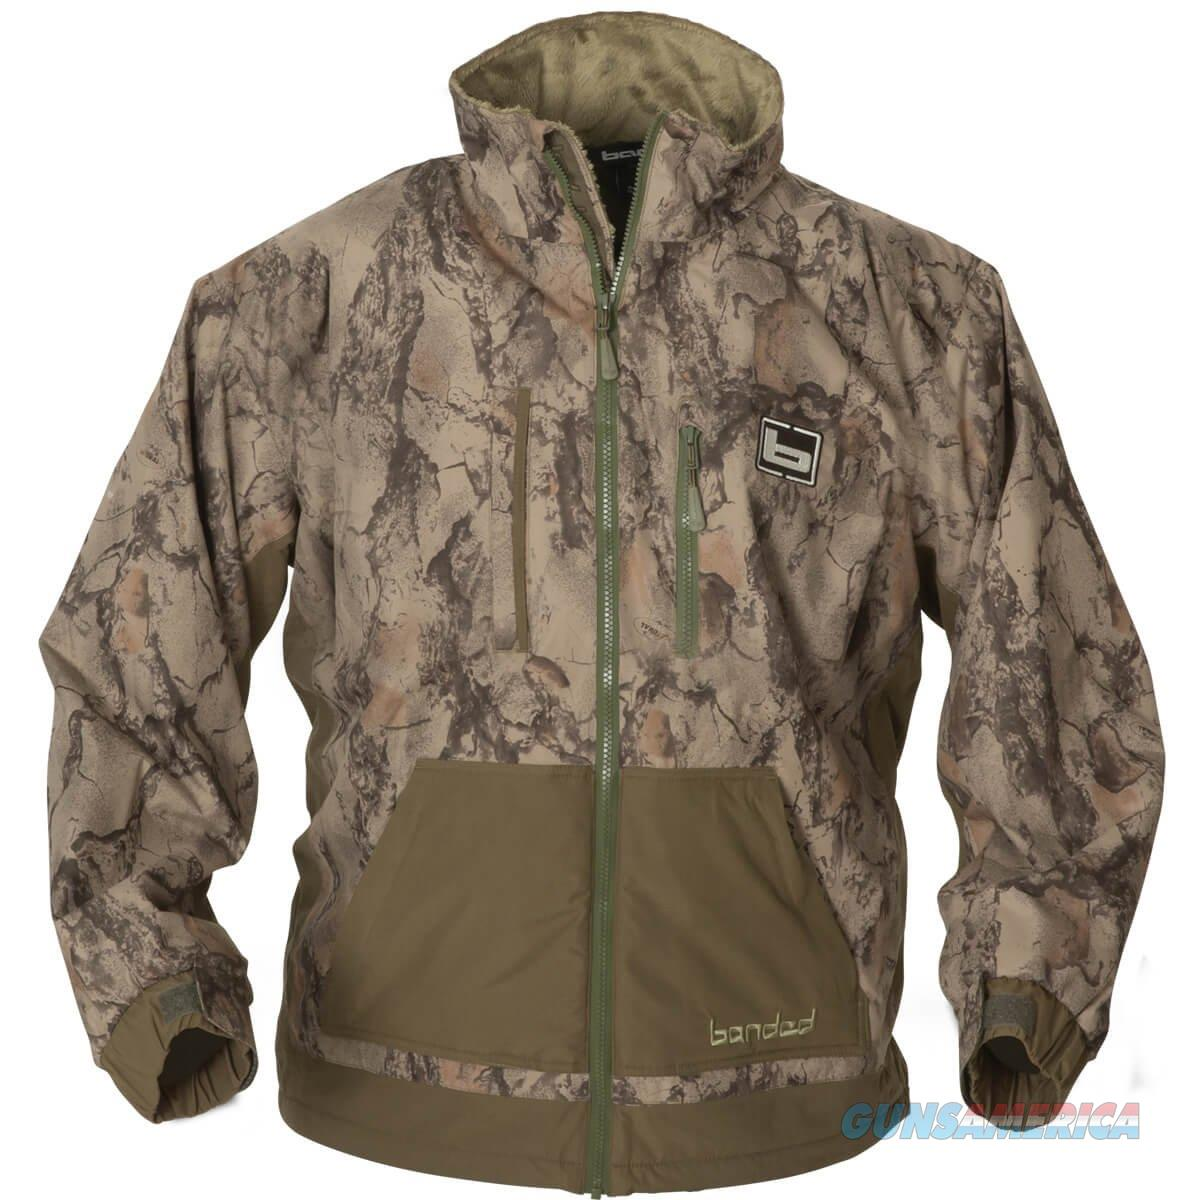 Banded Chesapeake Pullover Nat Gear Medium  Non-Guns > Shotgun Sports > Vests/Jackets